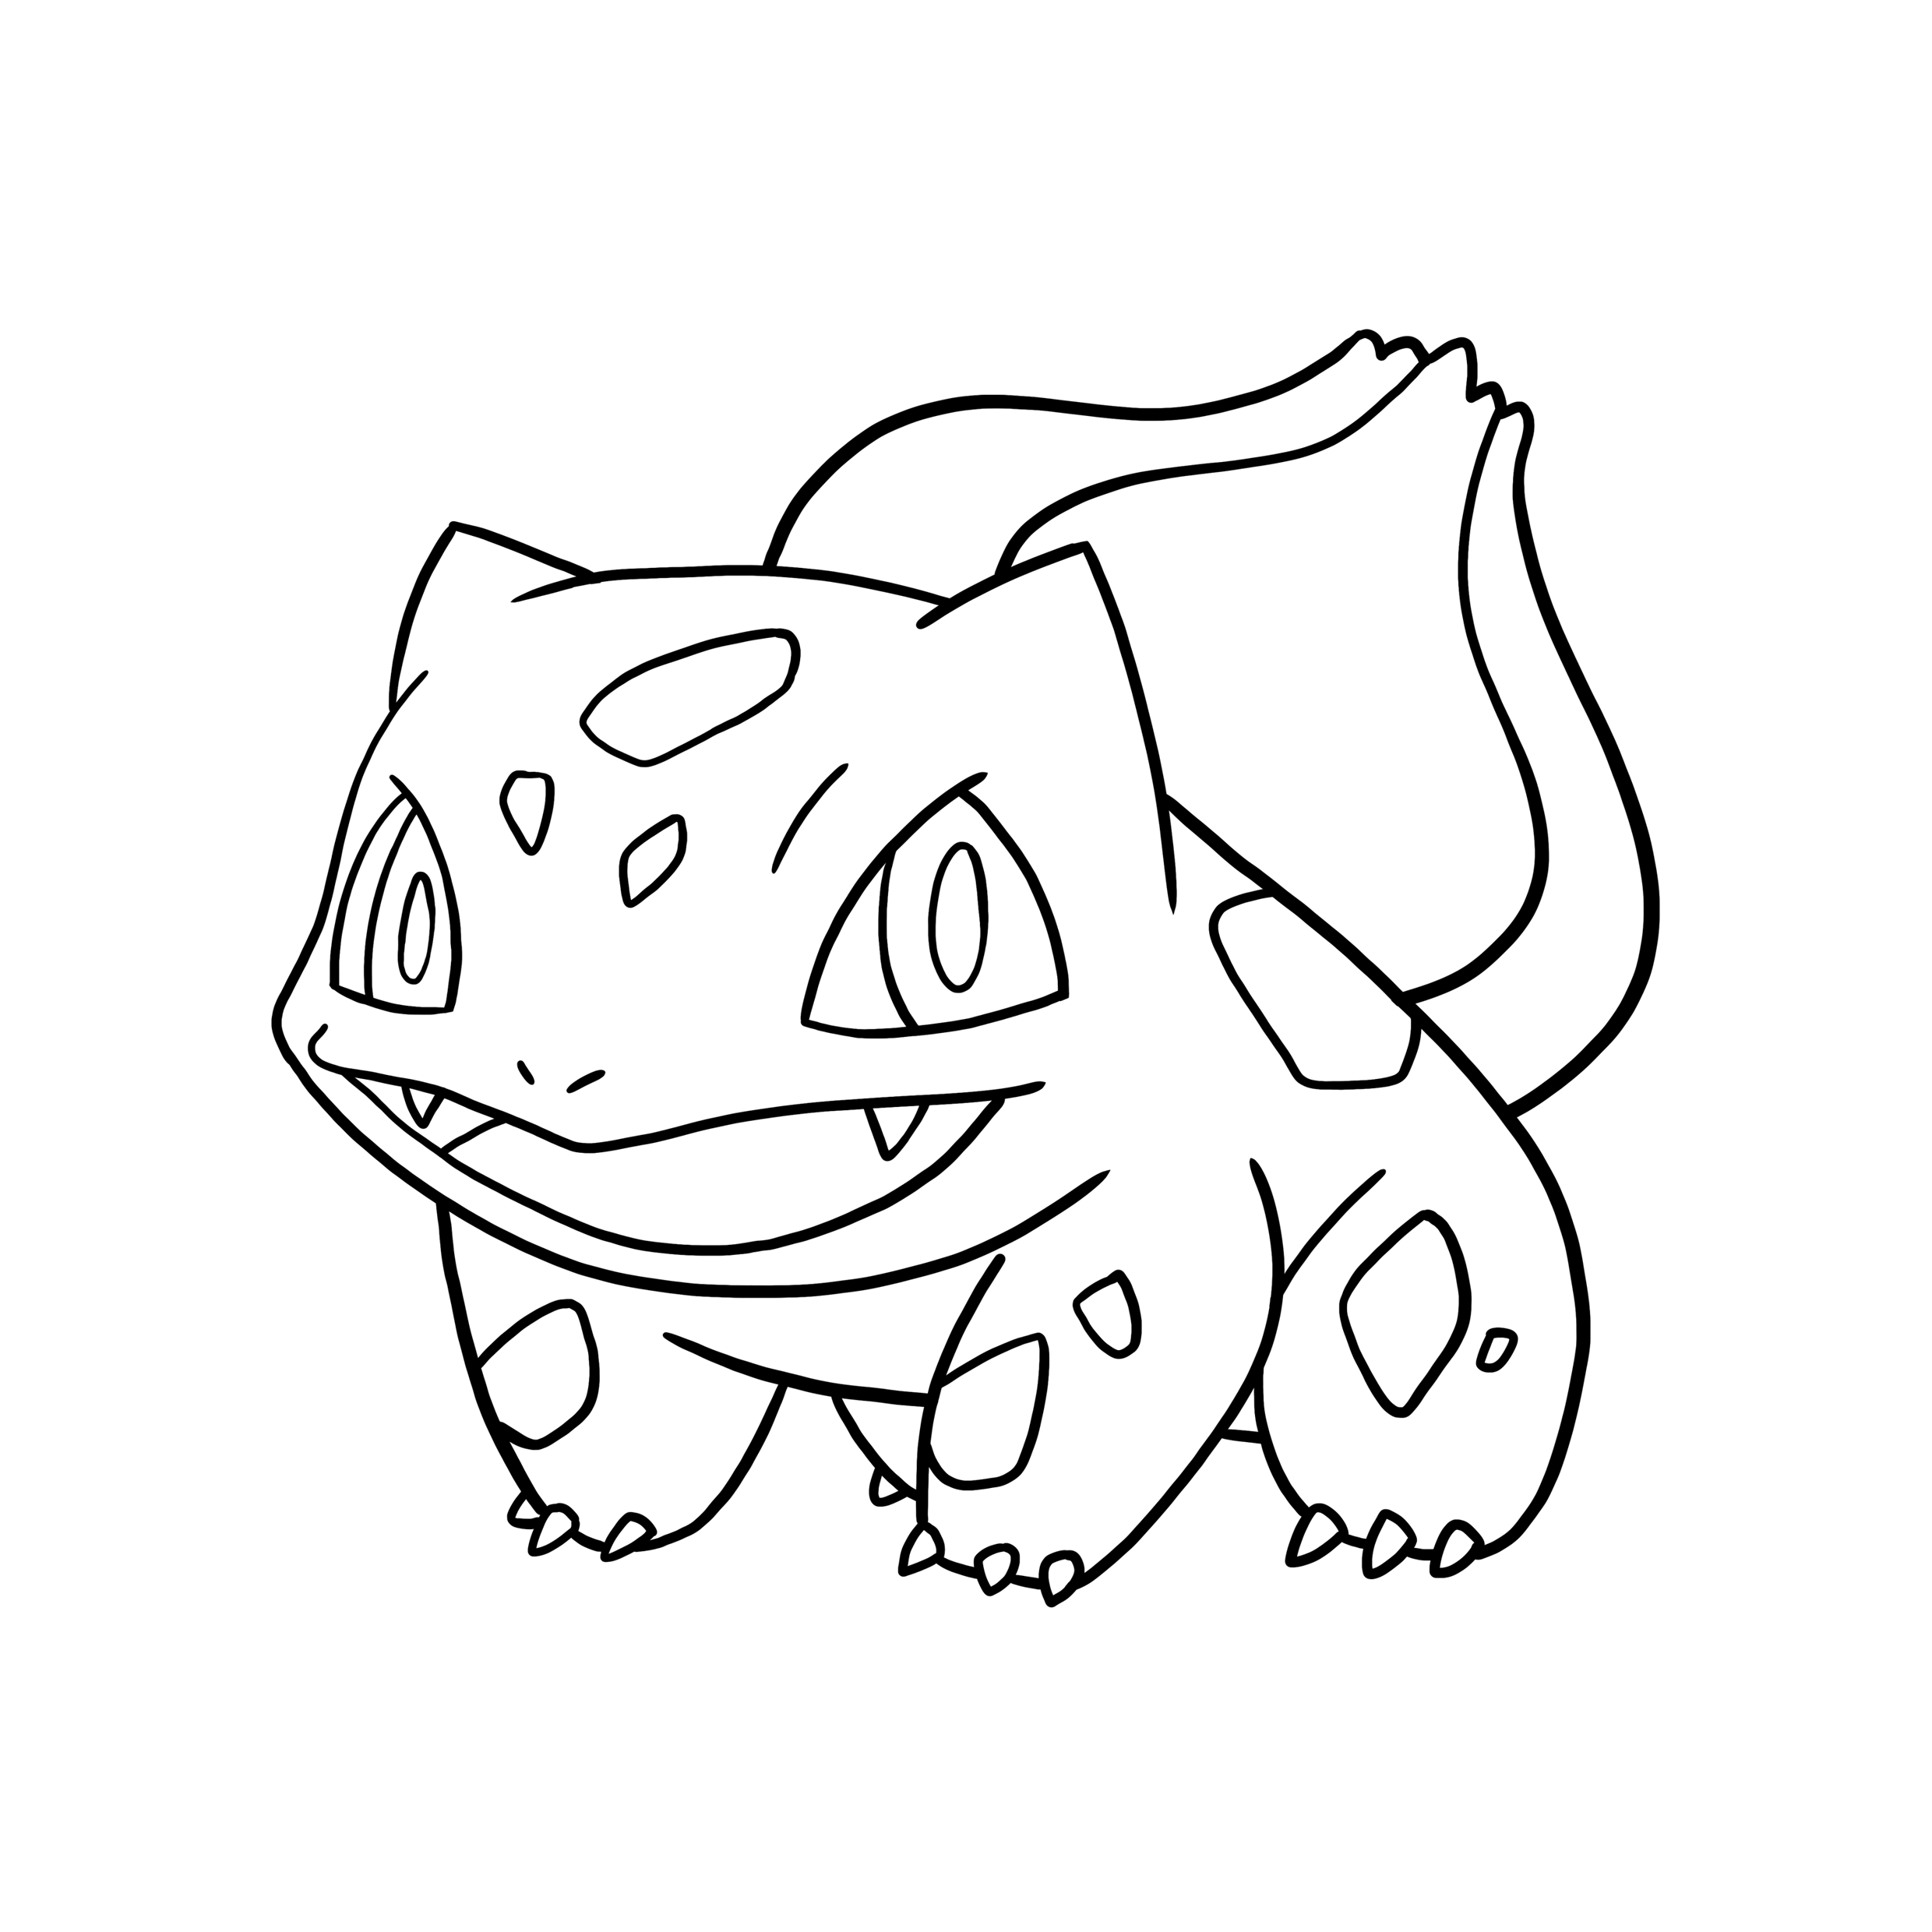 Image result for charmander images black and white